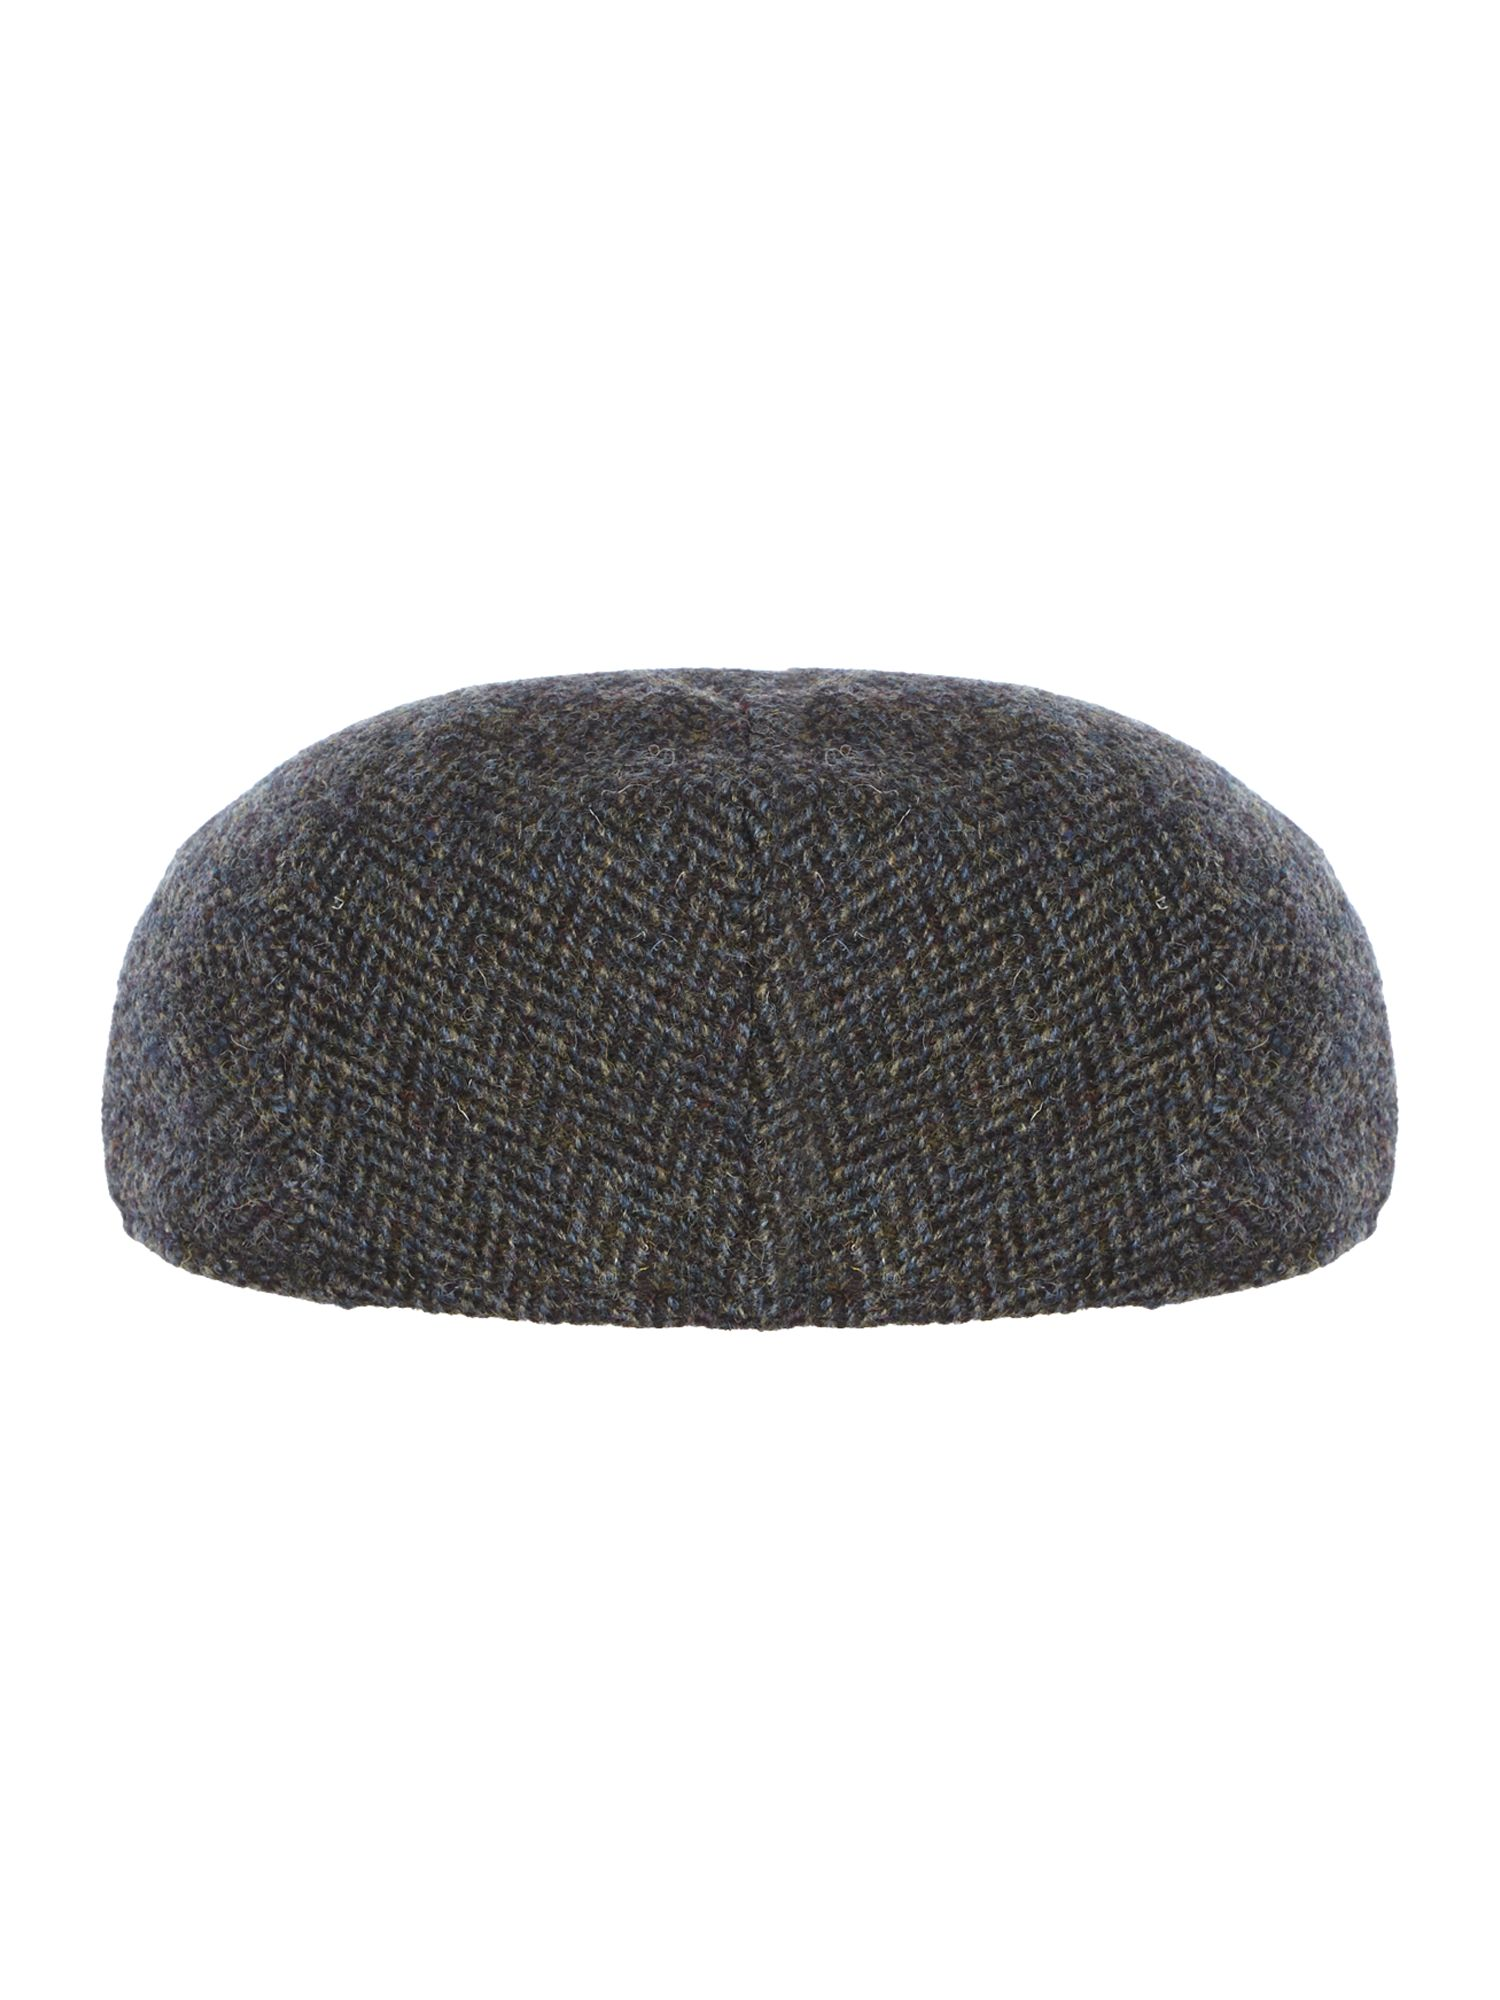 Herringbone harris tweed flat cap